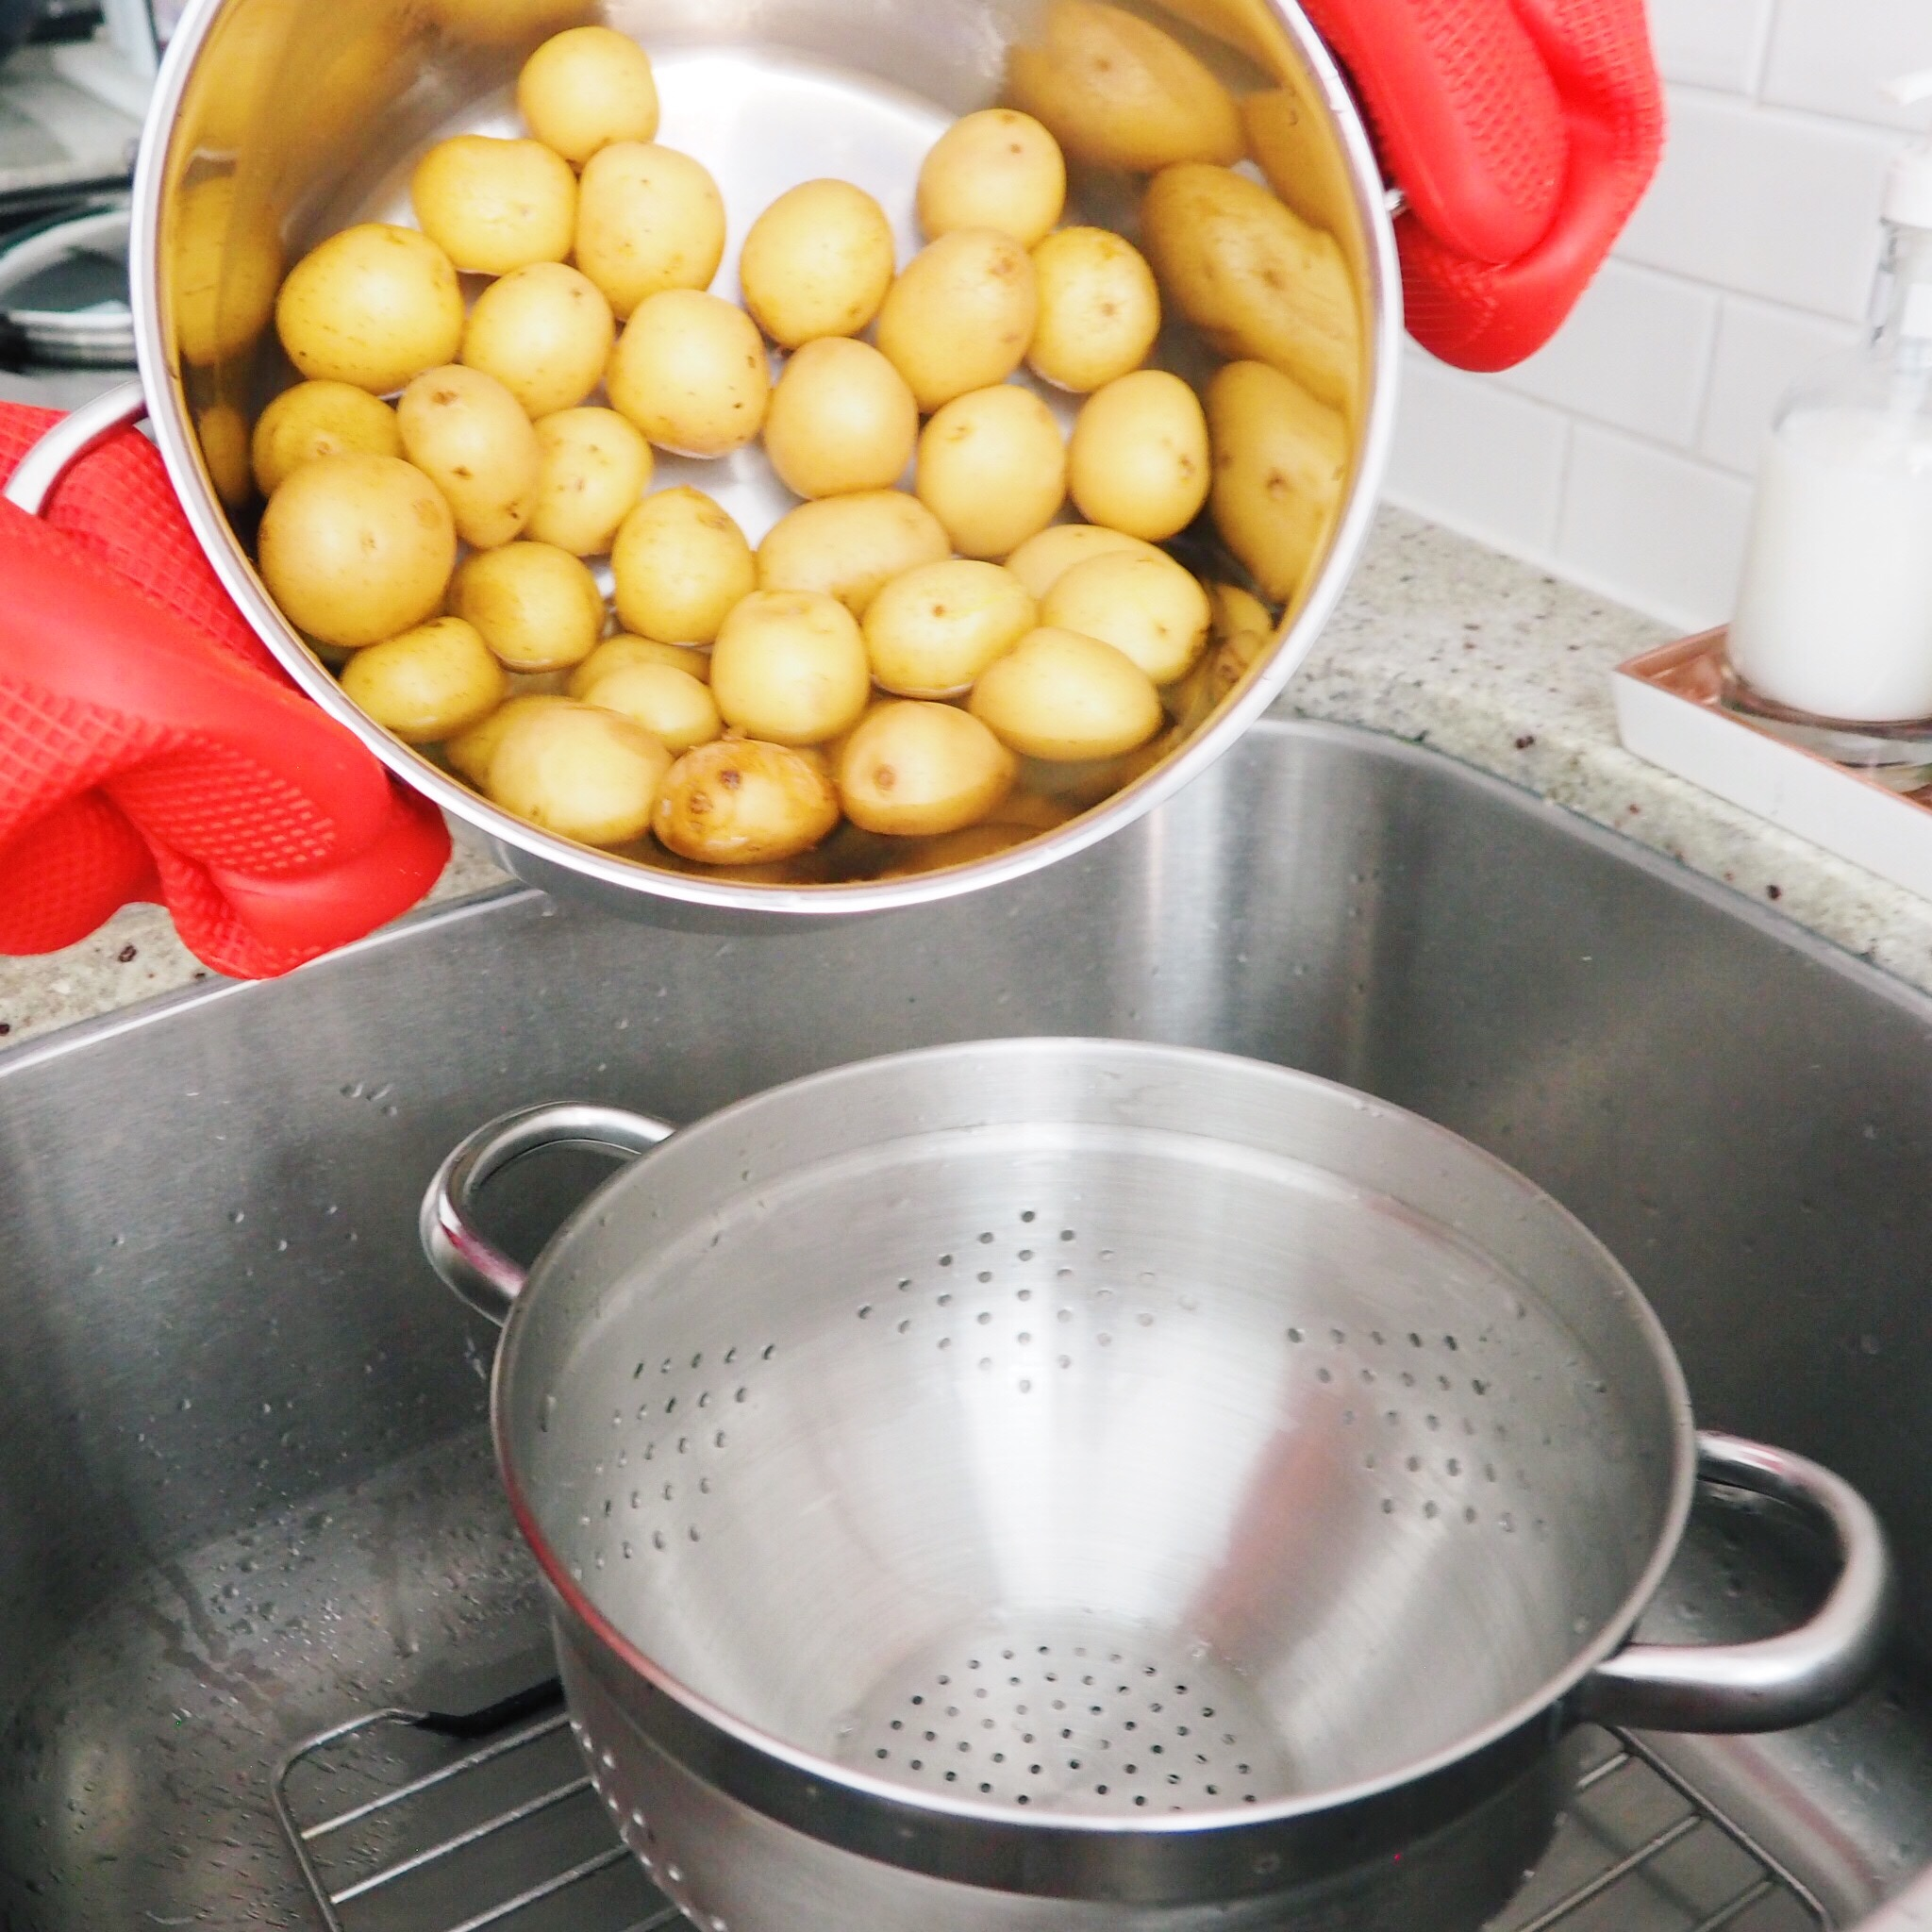 Step 3 - Strain your potatoes in a colander